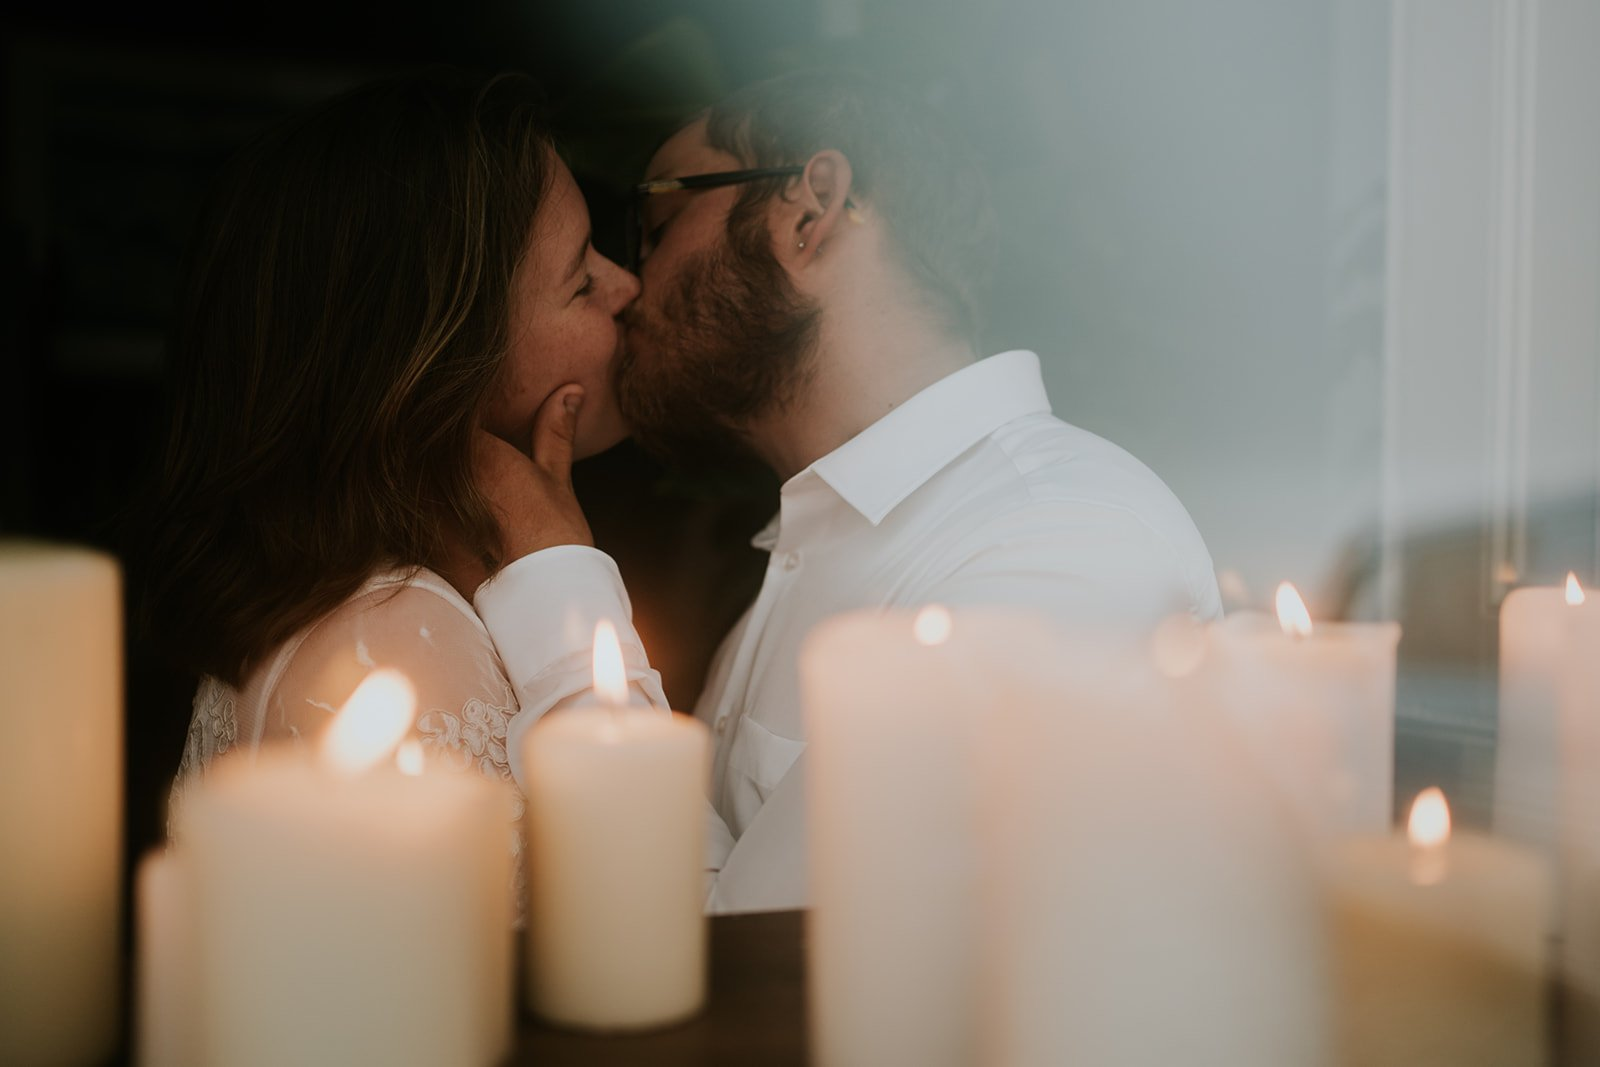 Bride and groom kiss in the window surrounded by candles during their romantic ceremony